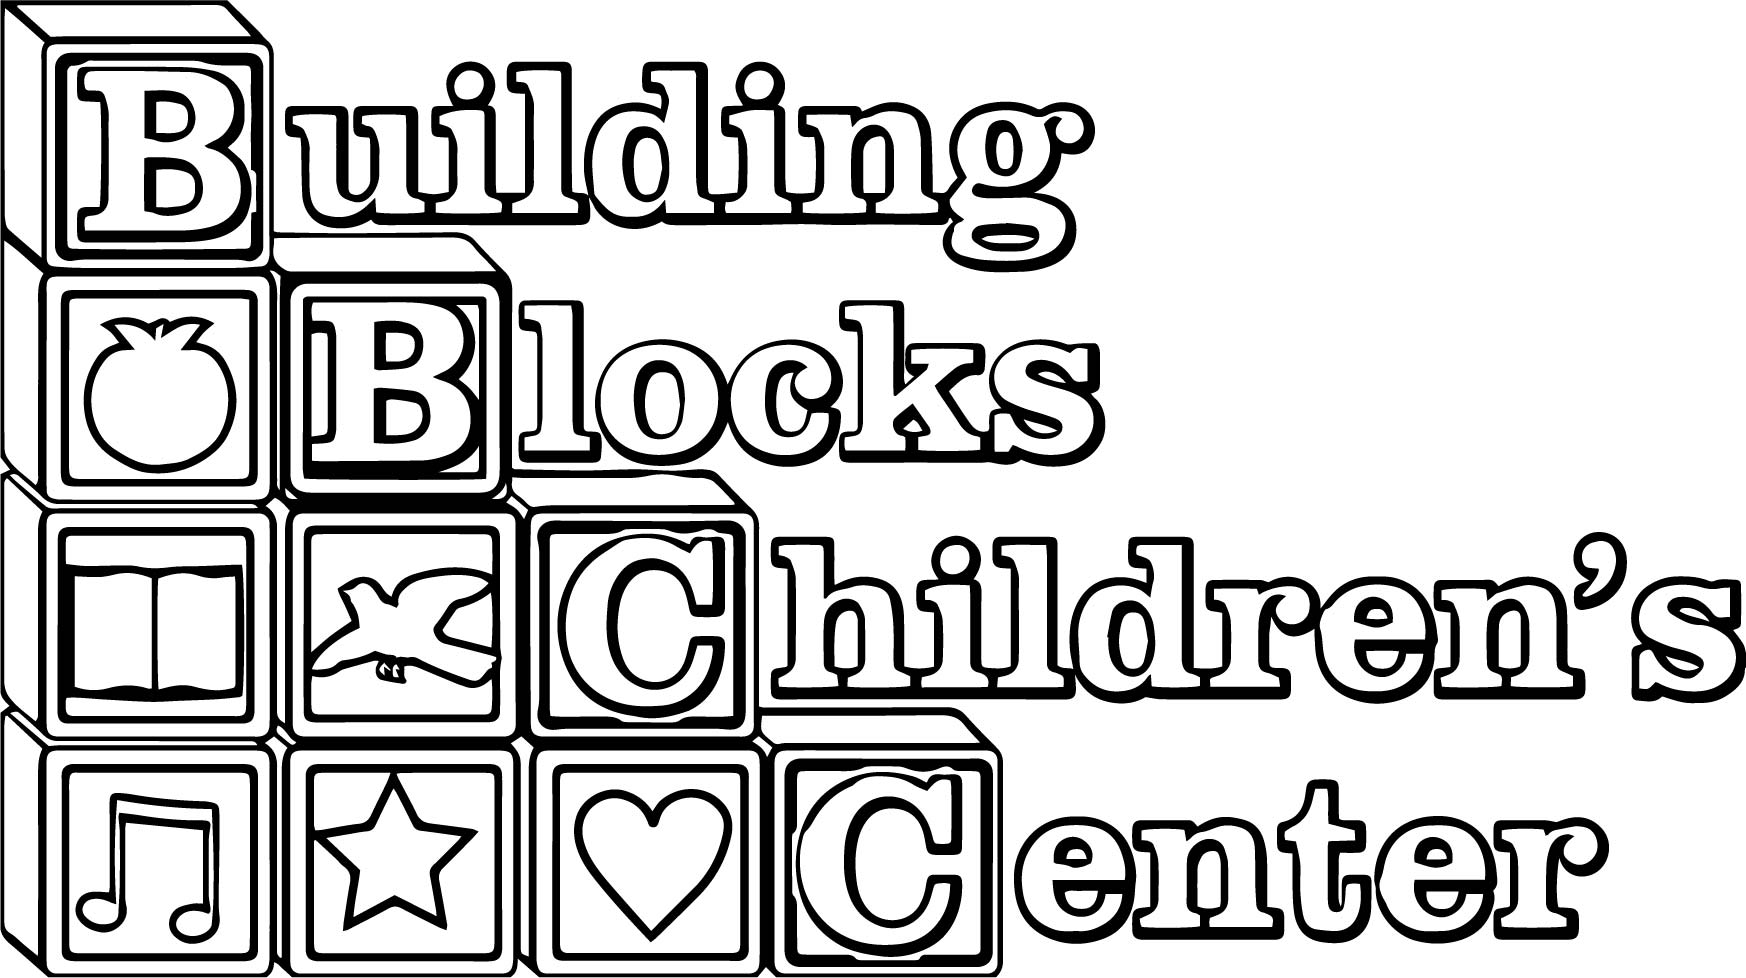 Coloring pages printable for. Building blocks clipart blank outline